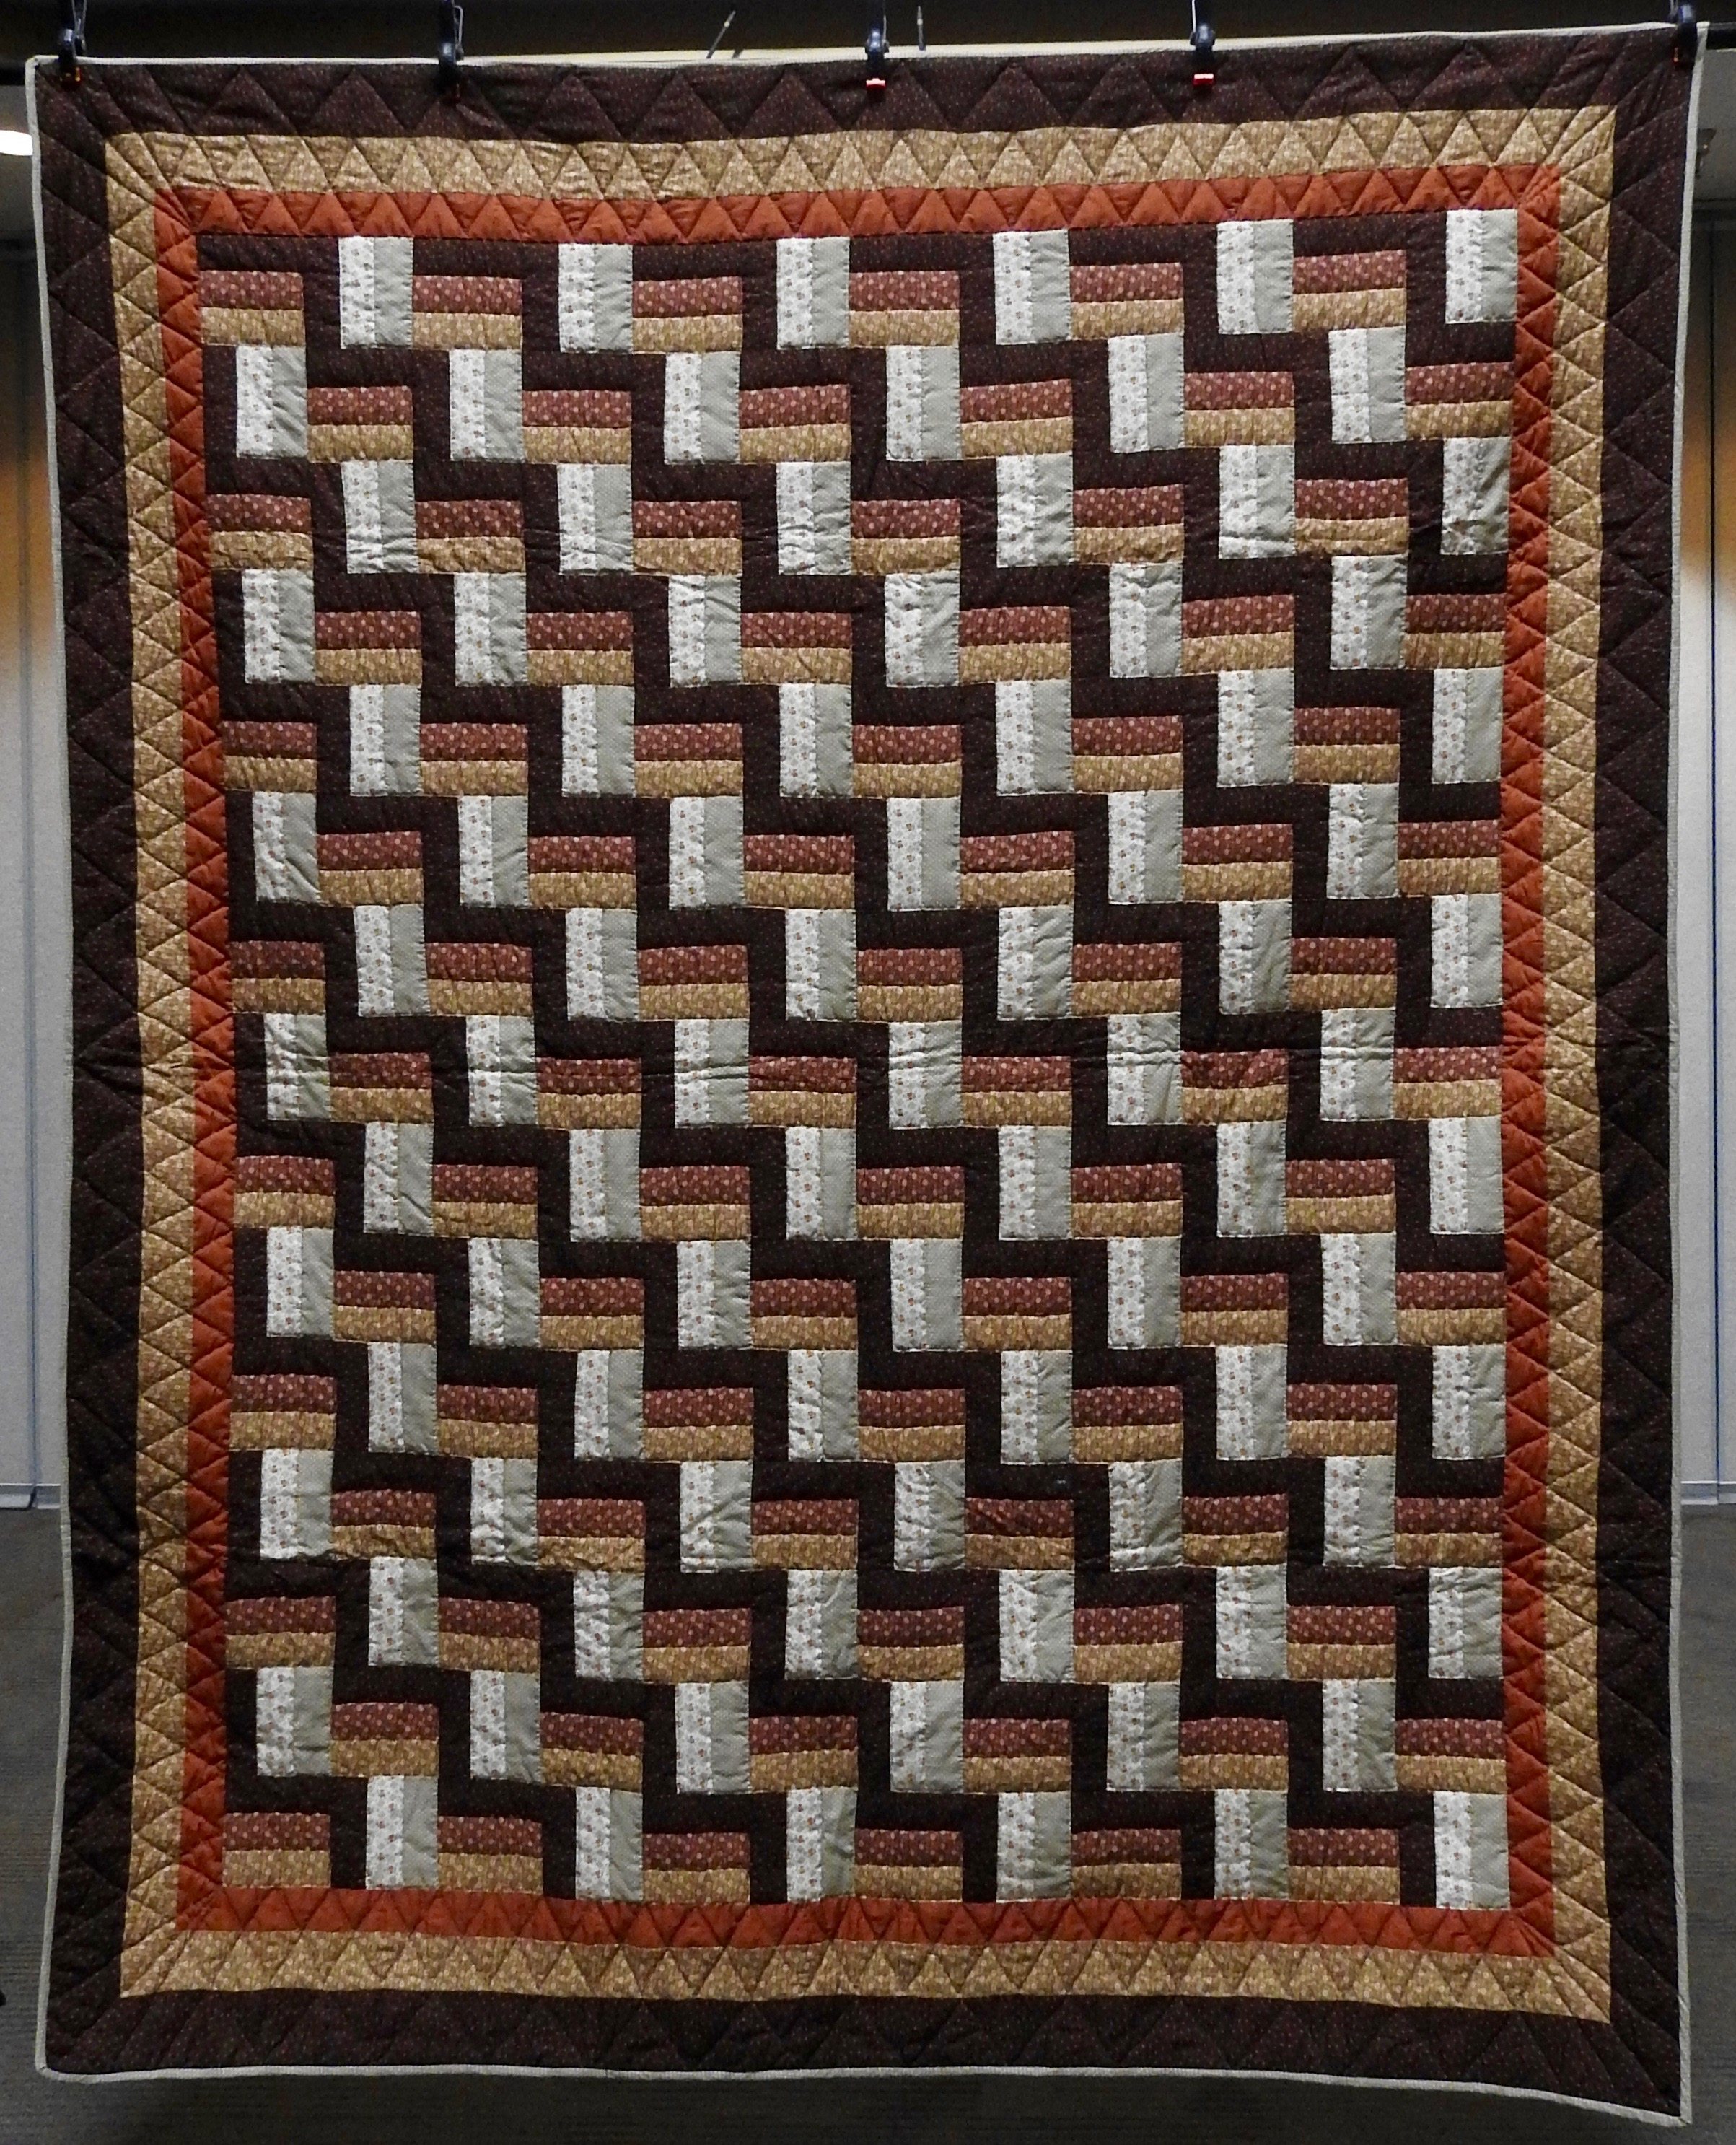 Woodsy Zig Zag 2, Pieced, Hand Quilted, donated by Lias Graber, 77 x 93